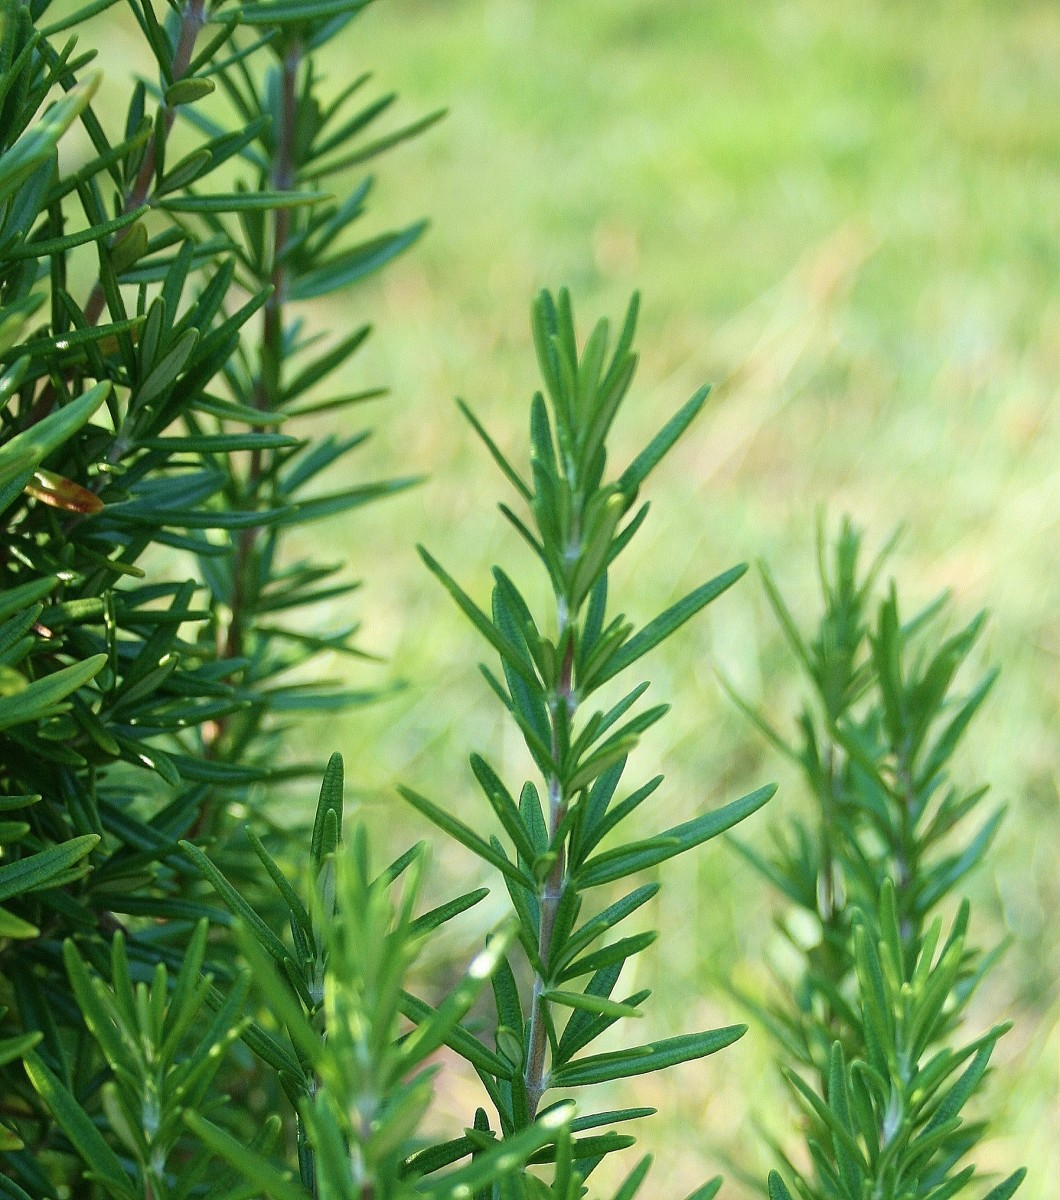 Rosemary has long been considered a sign of friendship. Grow it in your mailbox garden or add a sprig of rosemary to a homemade gift.